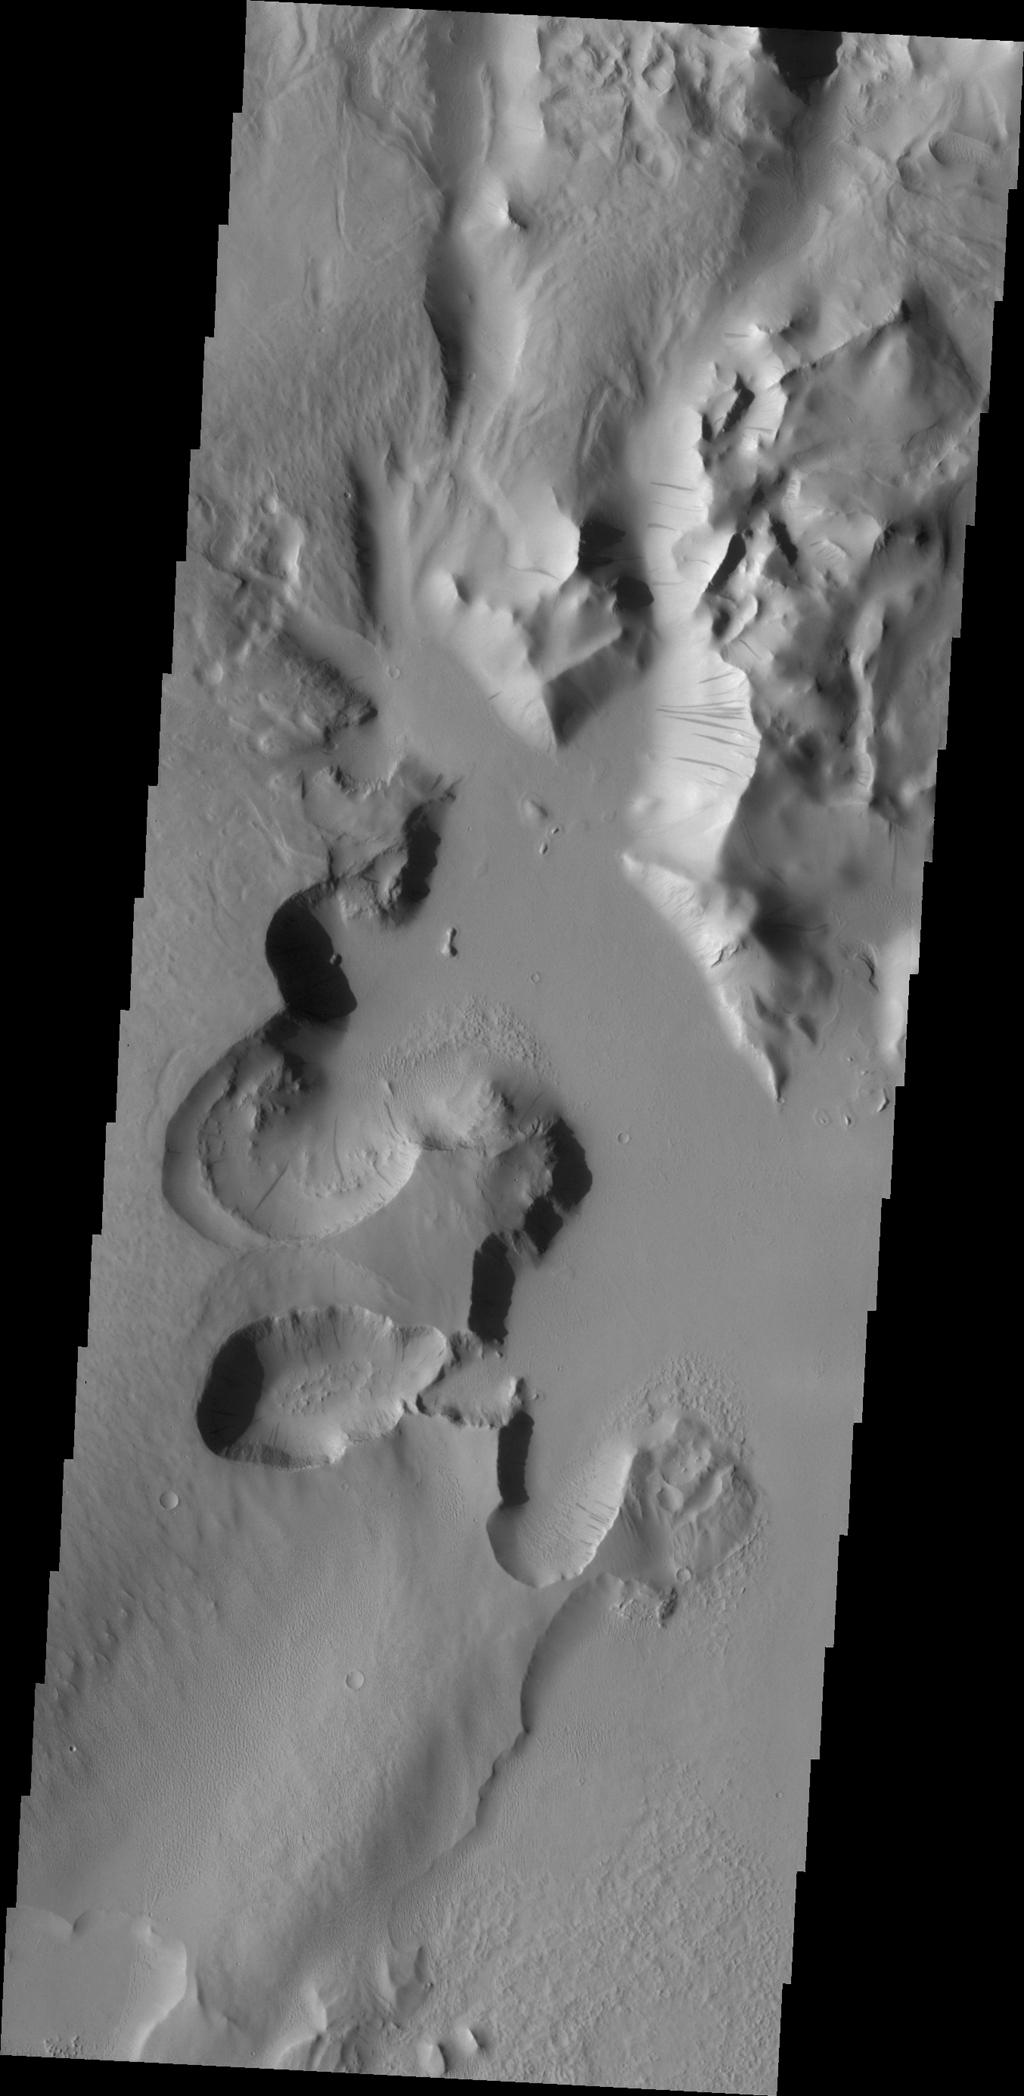 Lycus Sulci is an extremely complex region surrounding the western and northern flanks of Olympus Mons. With a multitude of fault formed cliff faces, dark slope streaks are a common occurrence. This image was captured by NASA's Mars Odyssey.